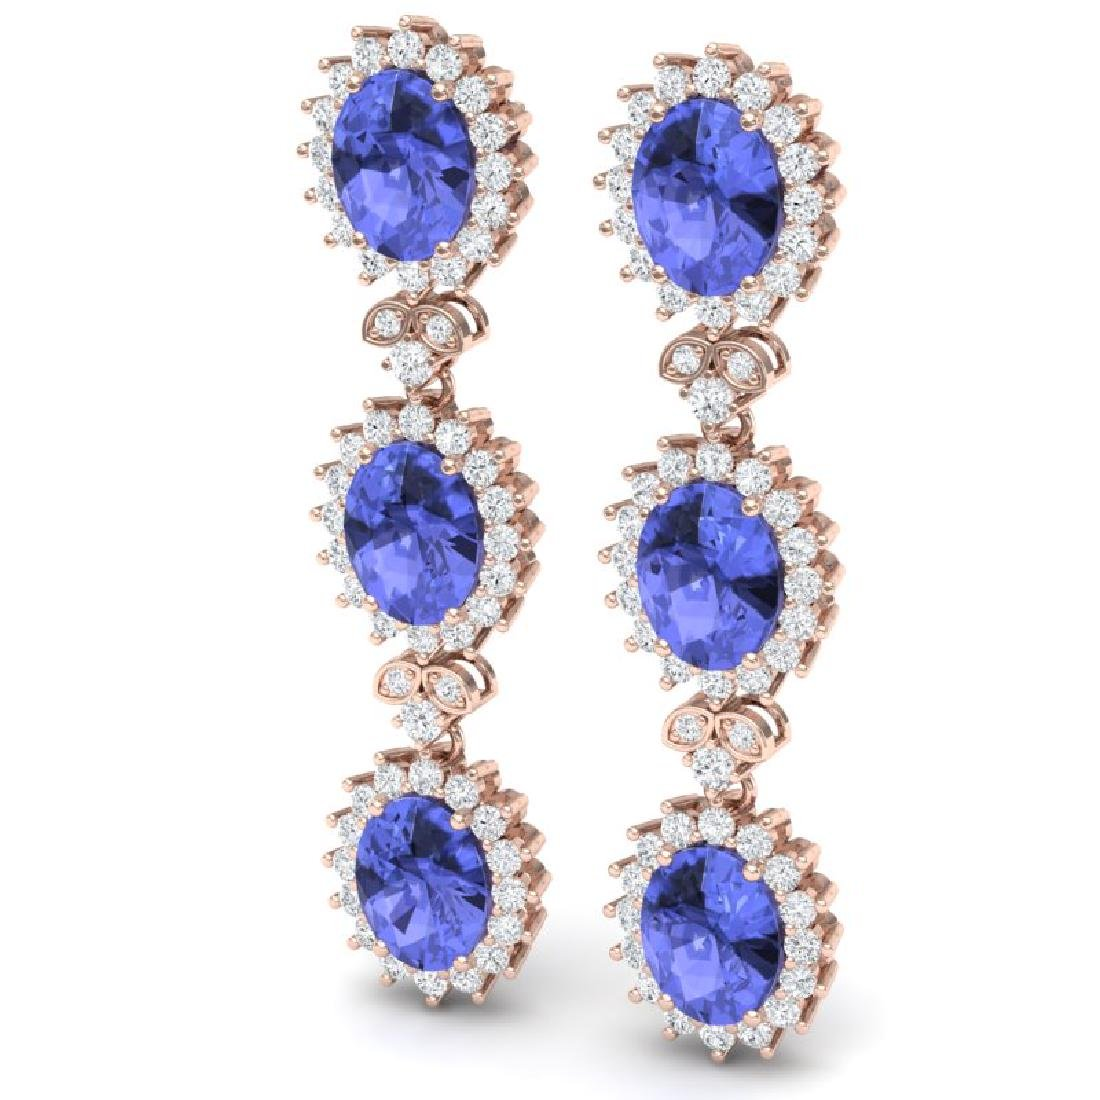 25.36 CTW Royalty Tanzanite & VS Diamond Earrings 18K - 2